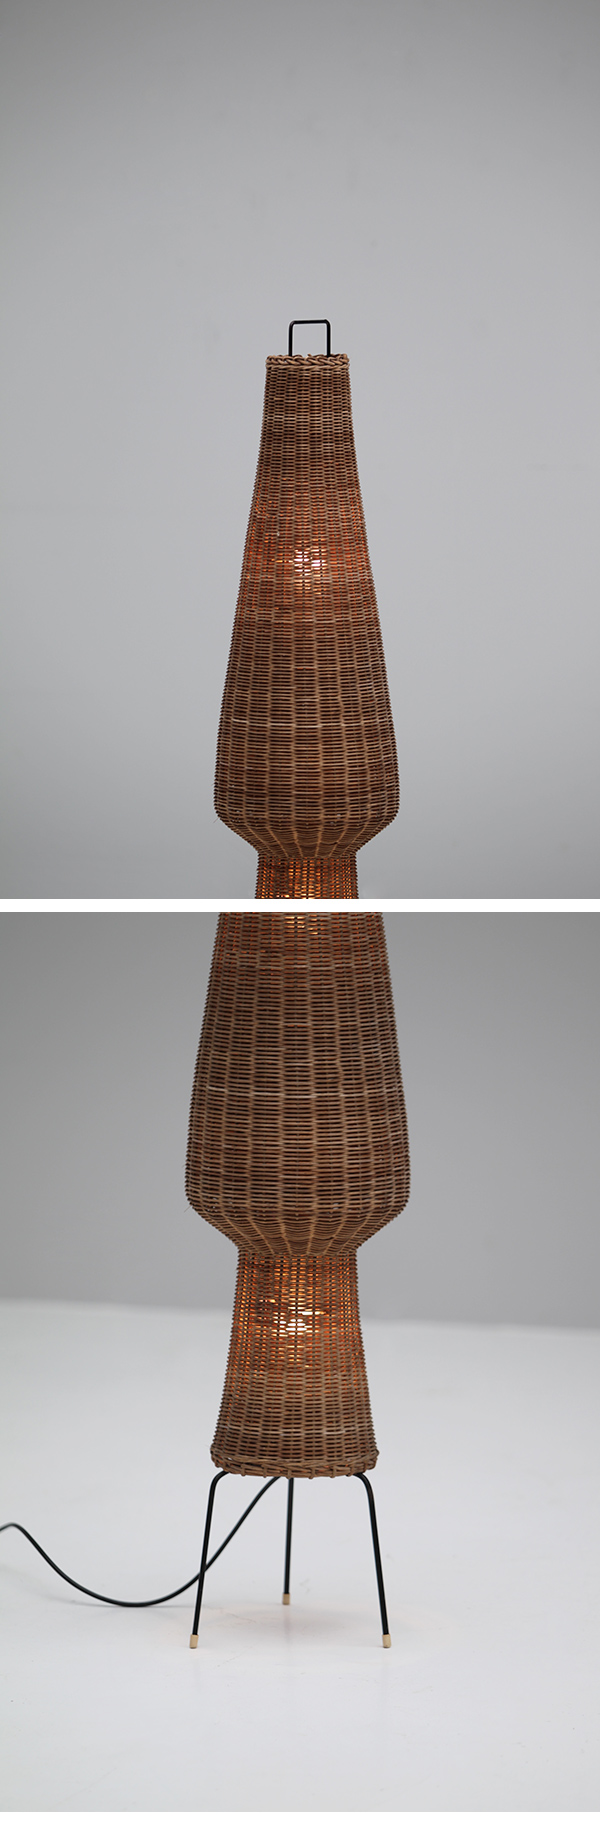 1950s, woven cane, floor lamp, vintage